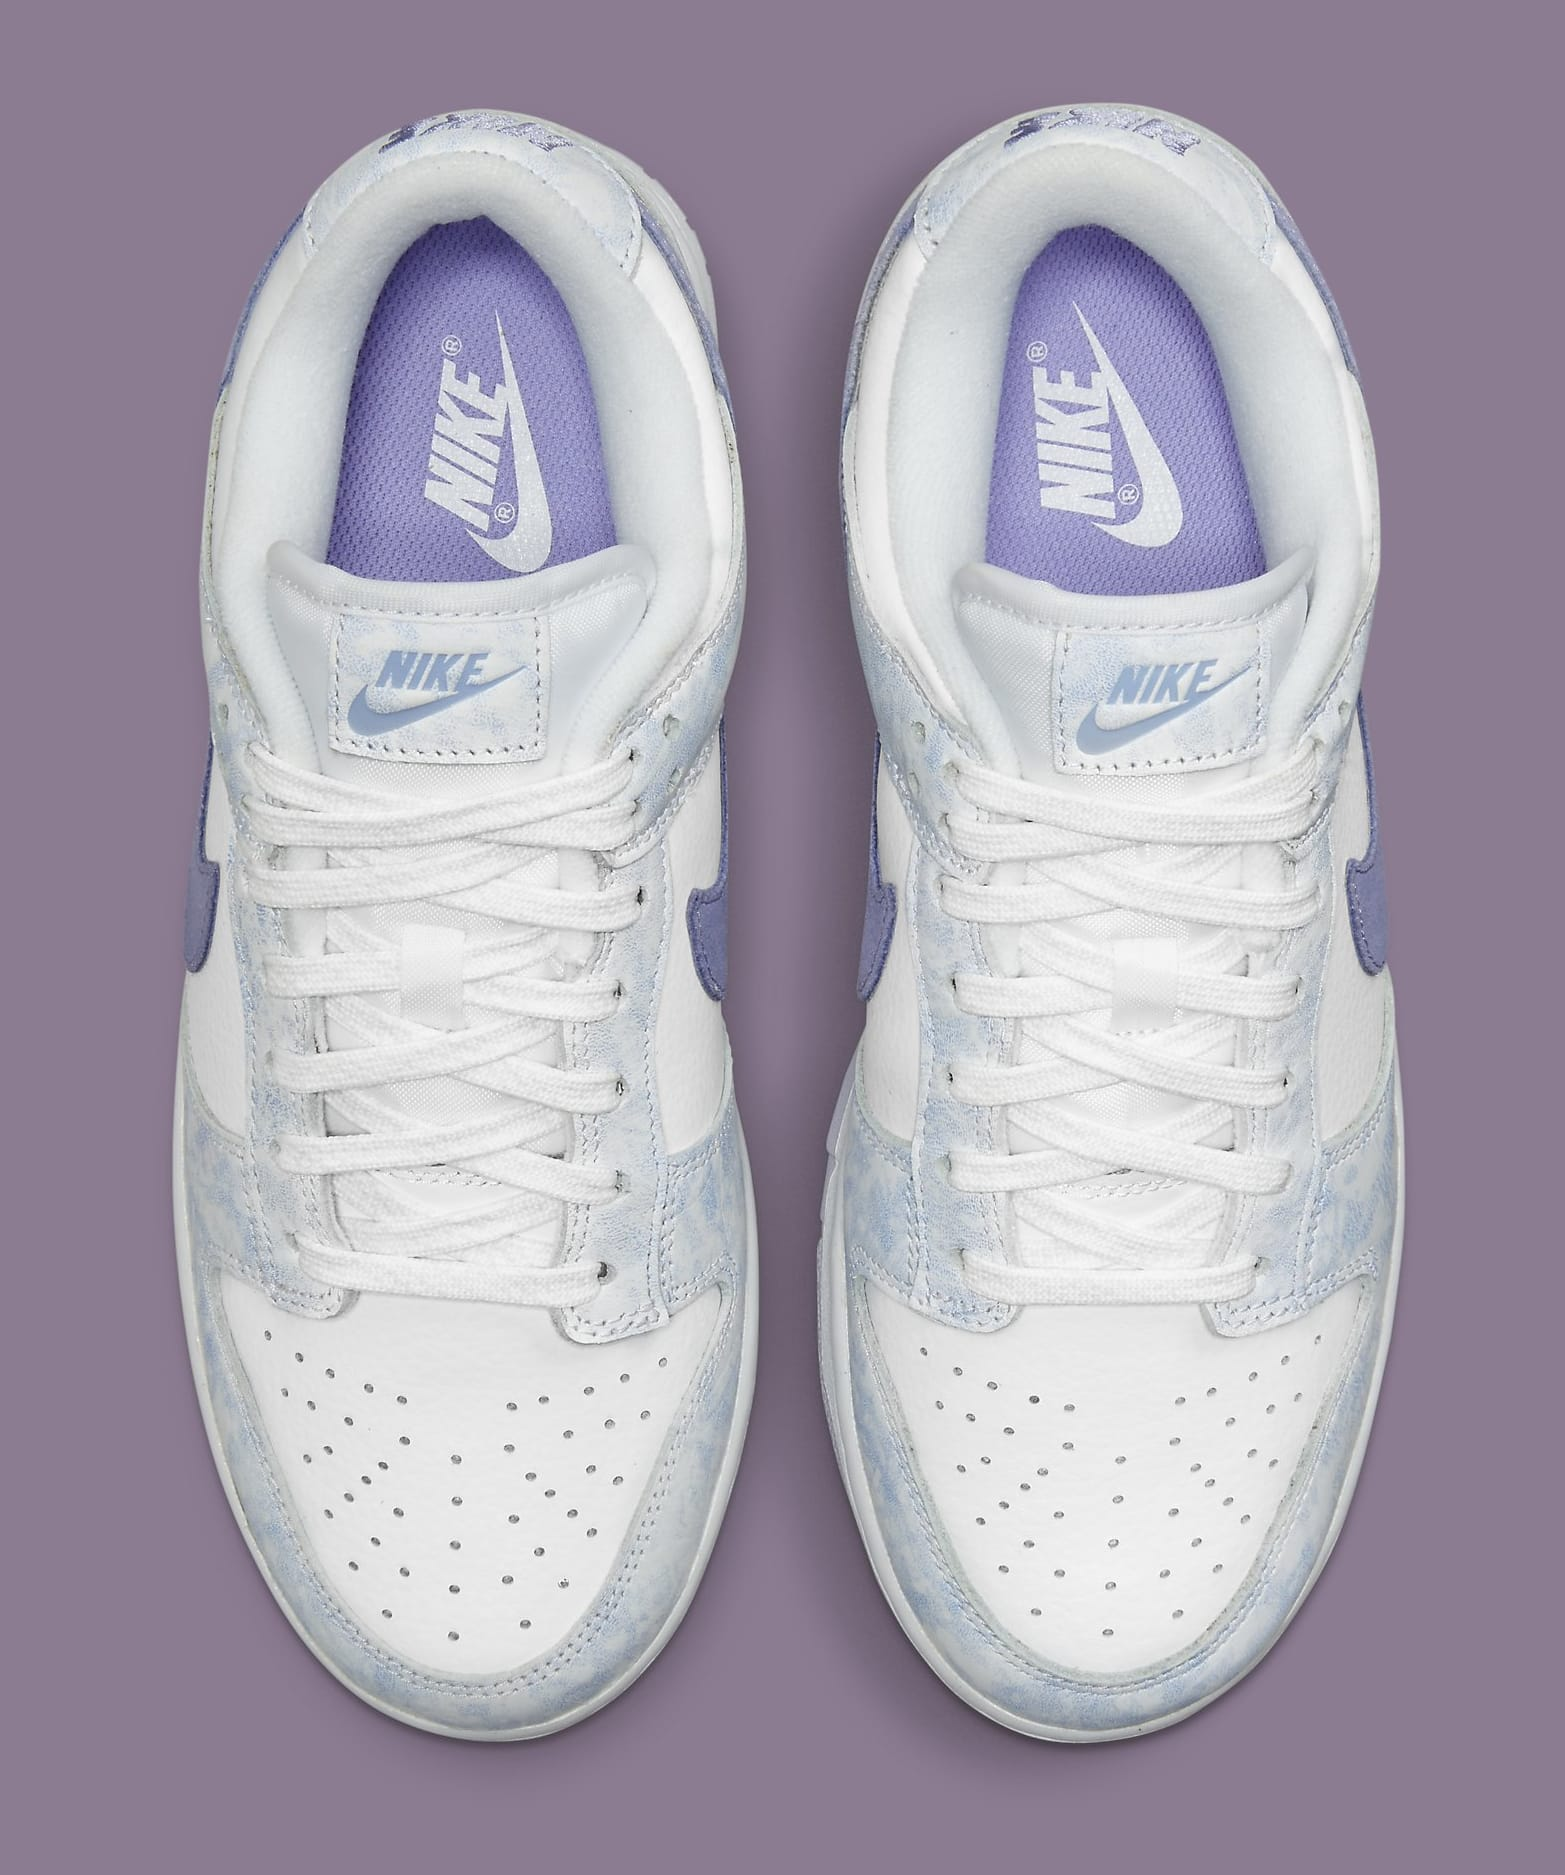 Nike Dunk Low Women's 'Purple Pulse' DM9467-500 Top